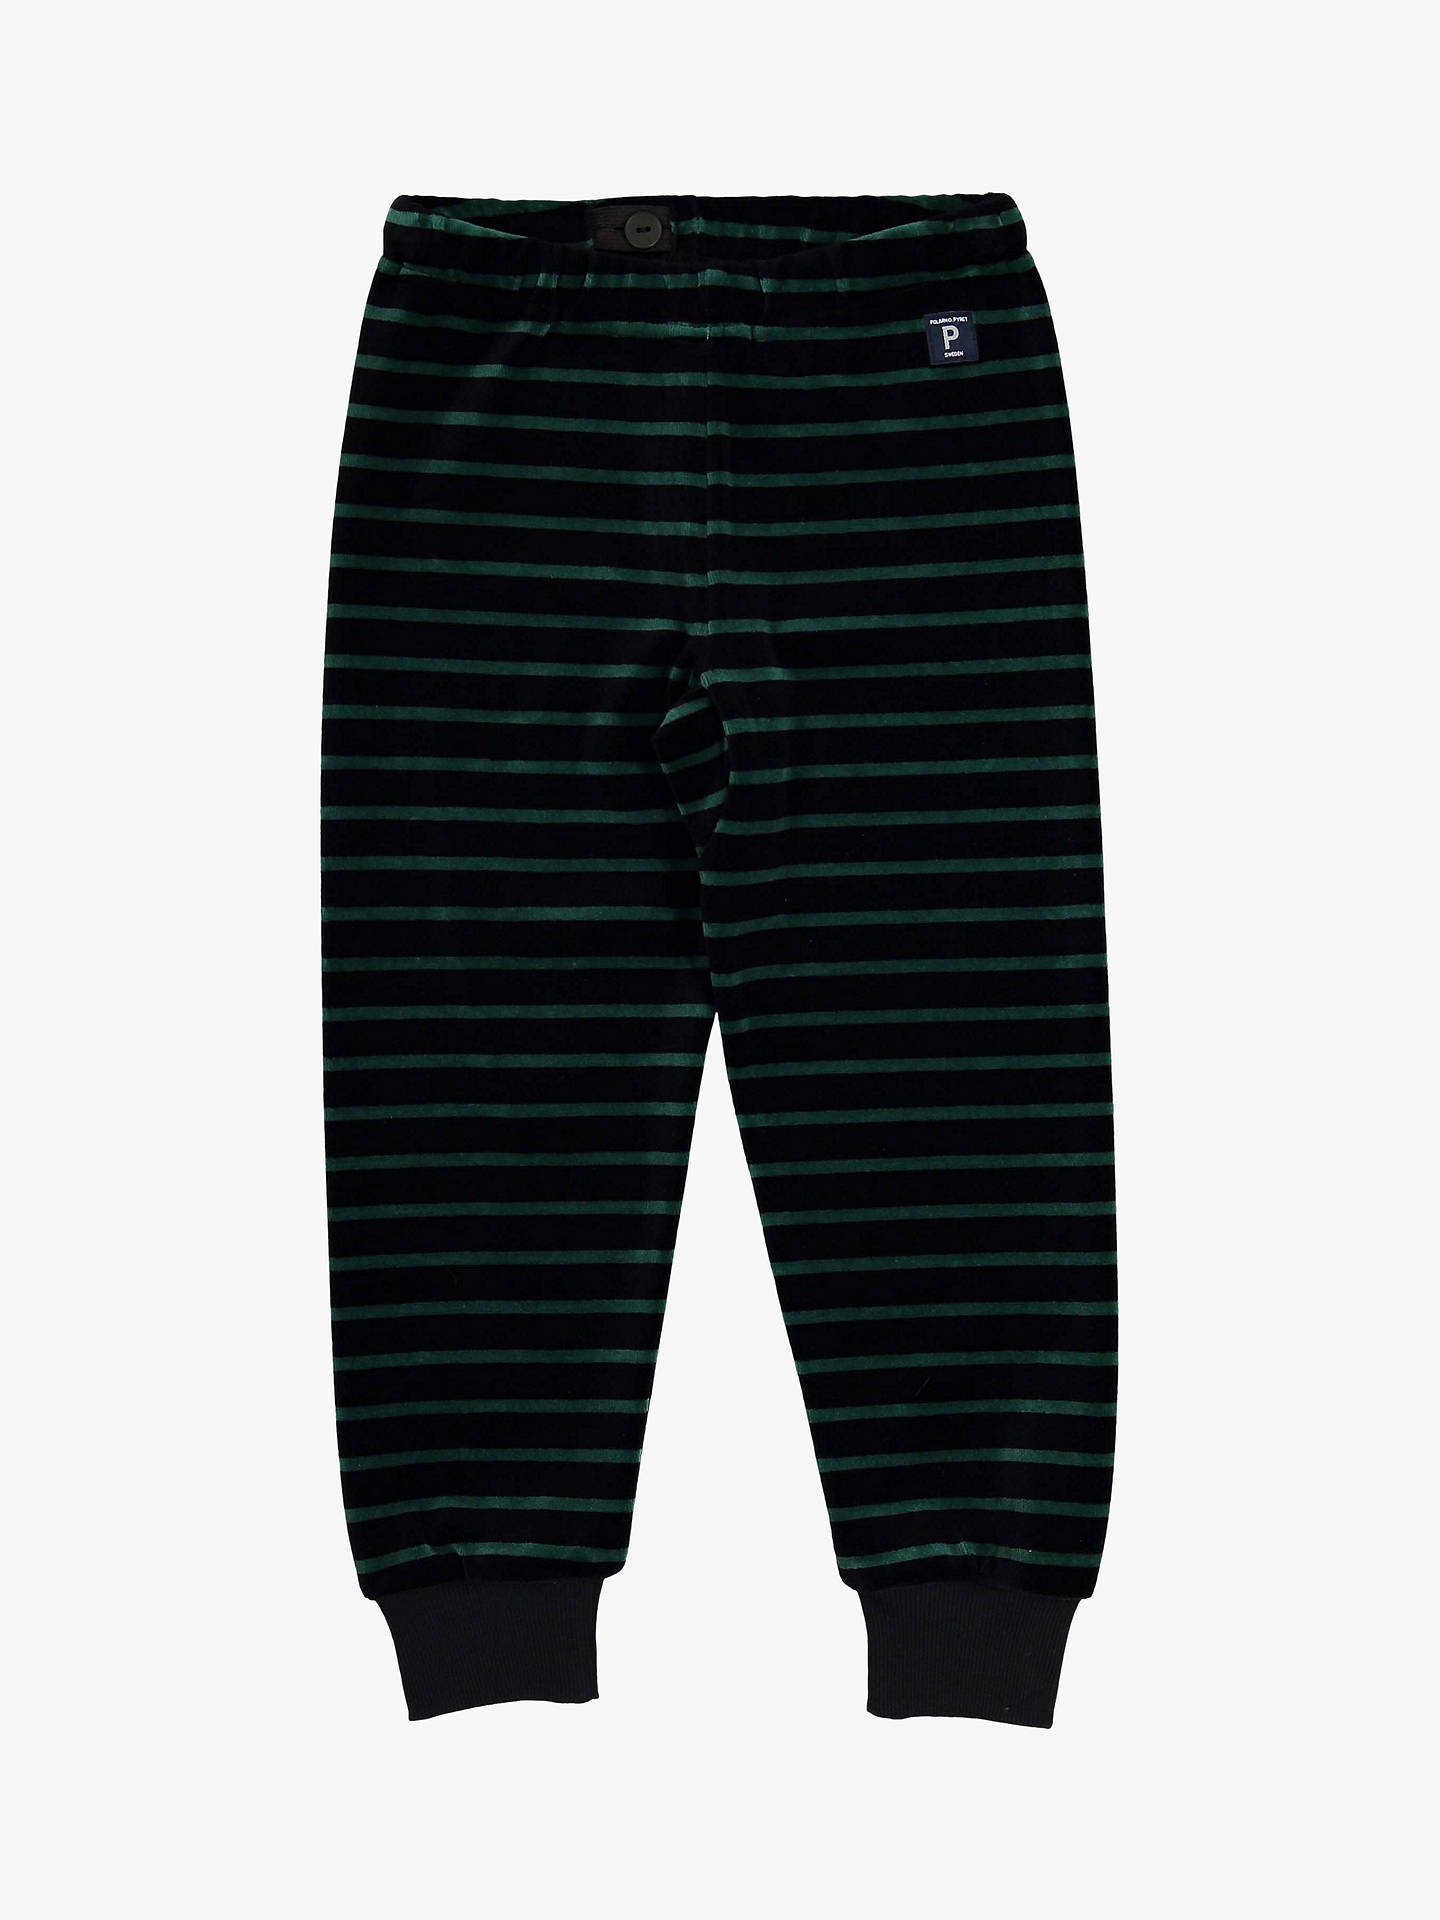 BuyPolarn O. Pyret Children's Stripe Velour Trousers, Black, 3-4 years Online at johnlewis.com